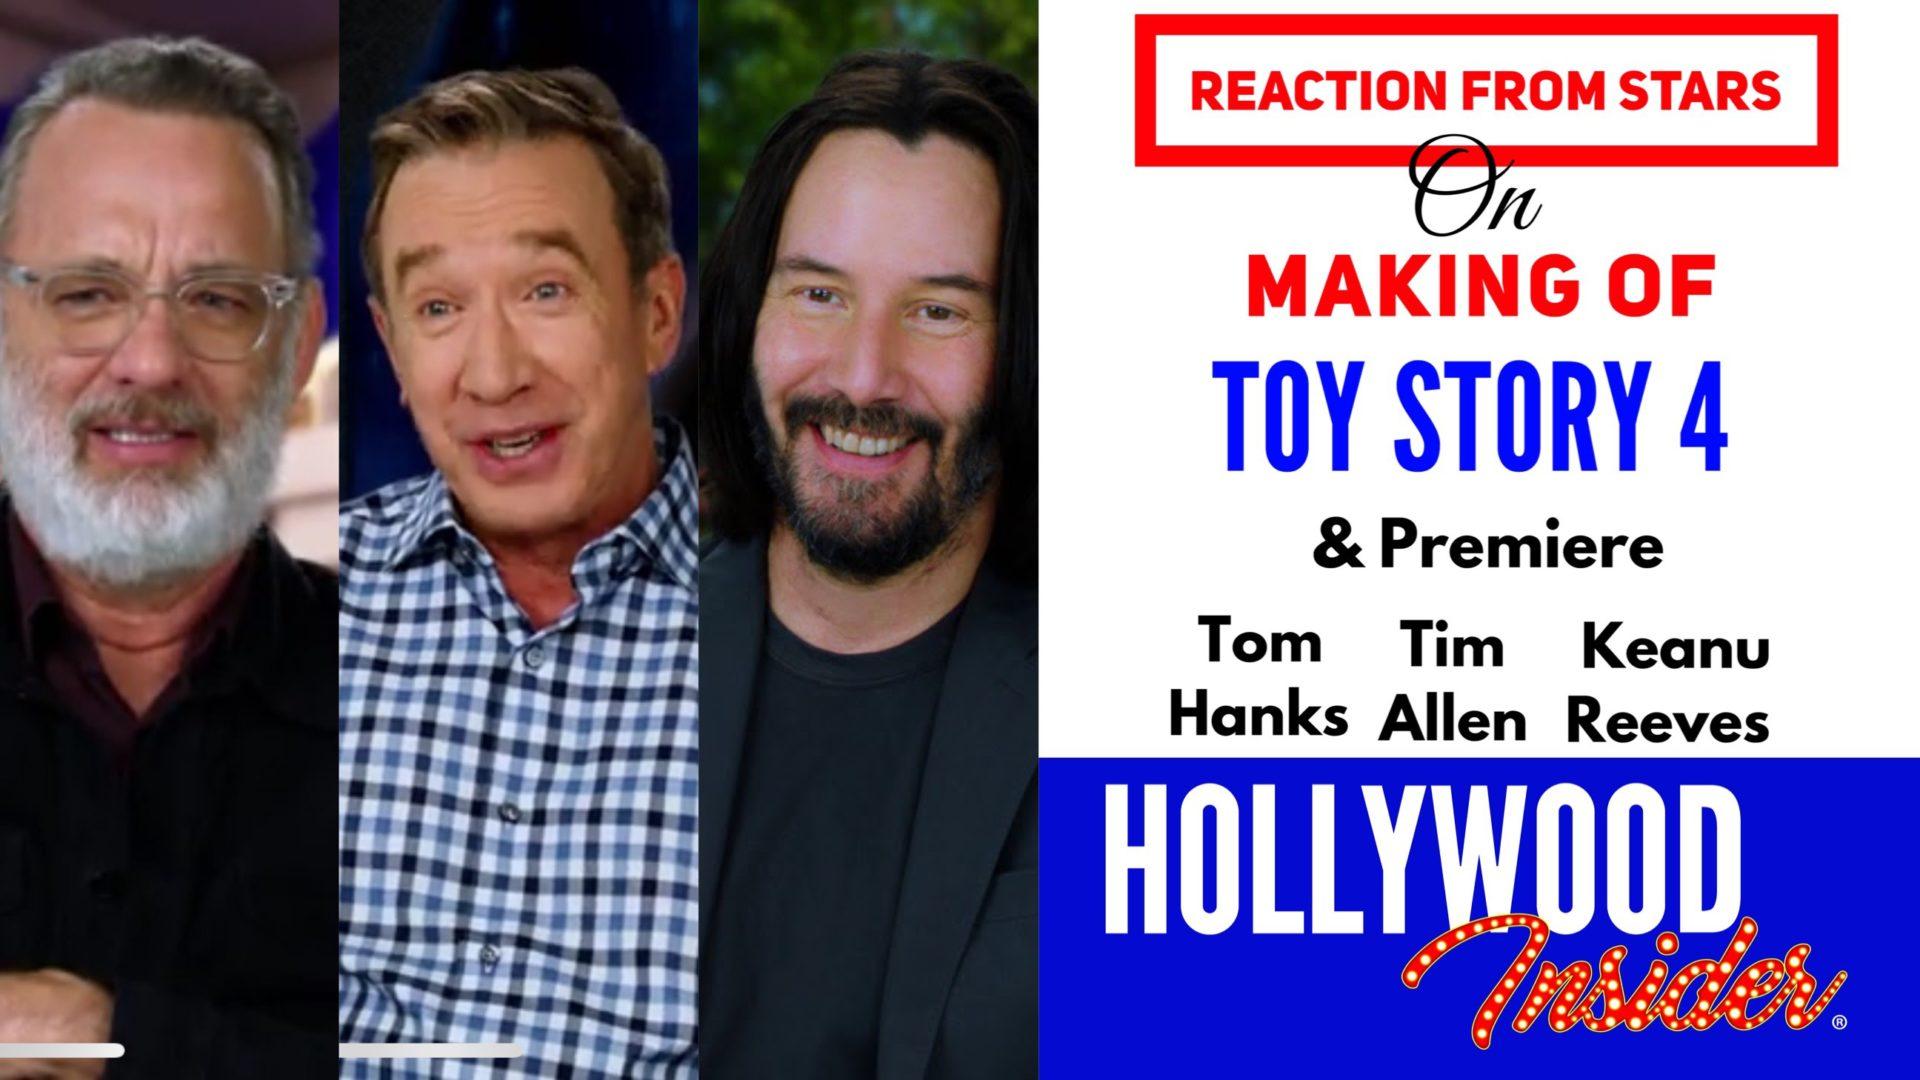 Hollywood Insider's Reaction From Stars on Making of Toy Story 4 Tom Hanks, Tim Allen, Keanu Reeves Disney Pixar